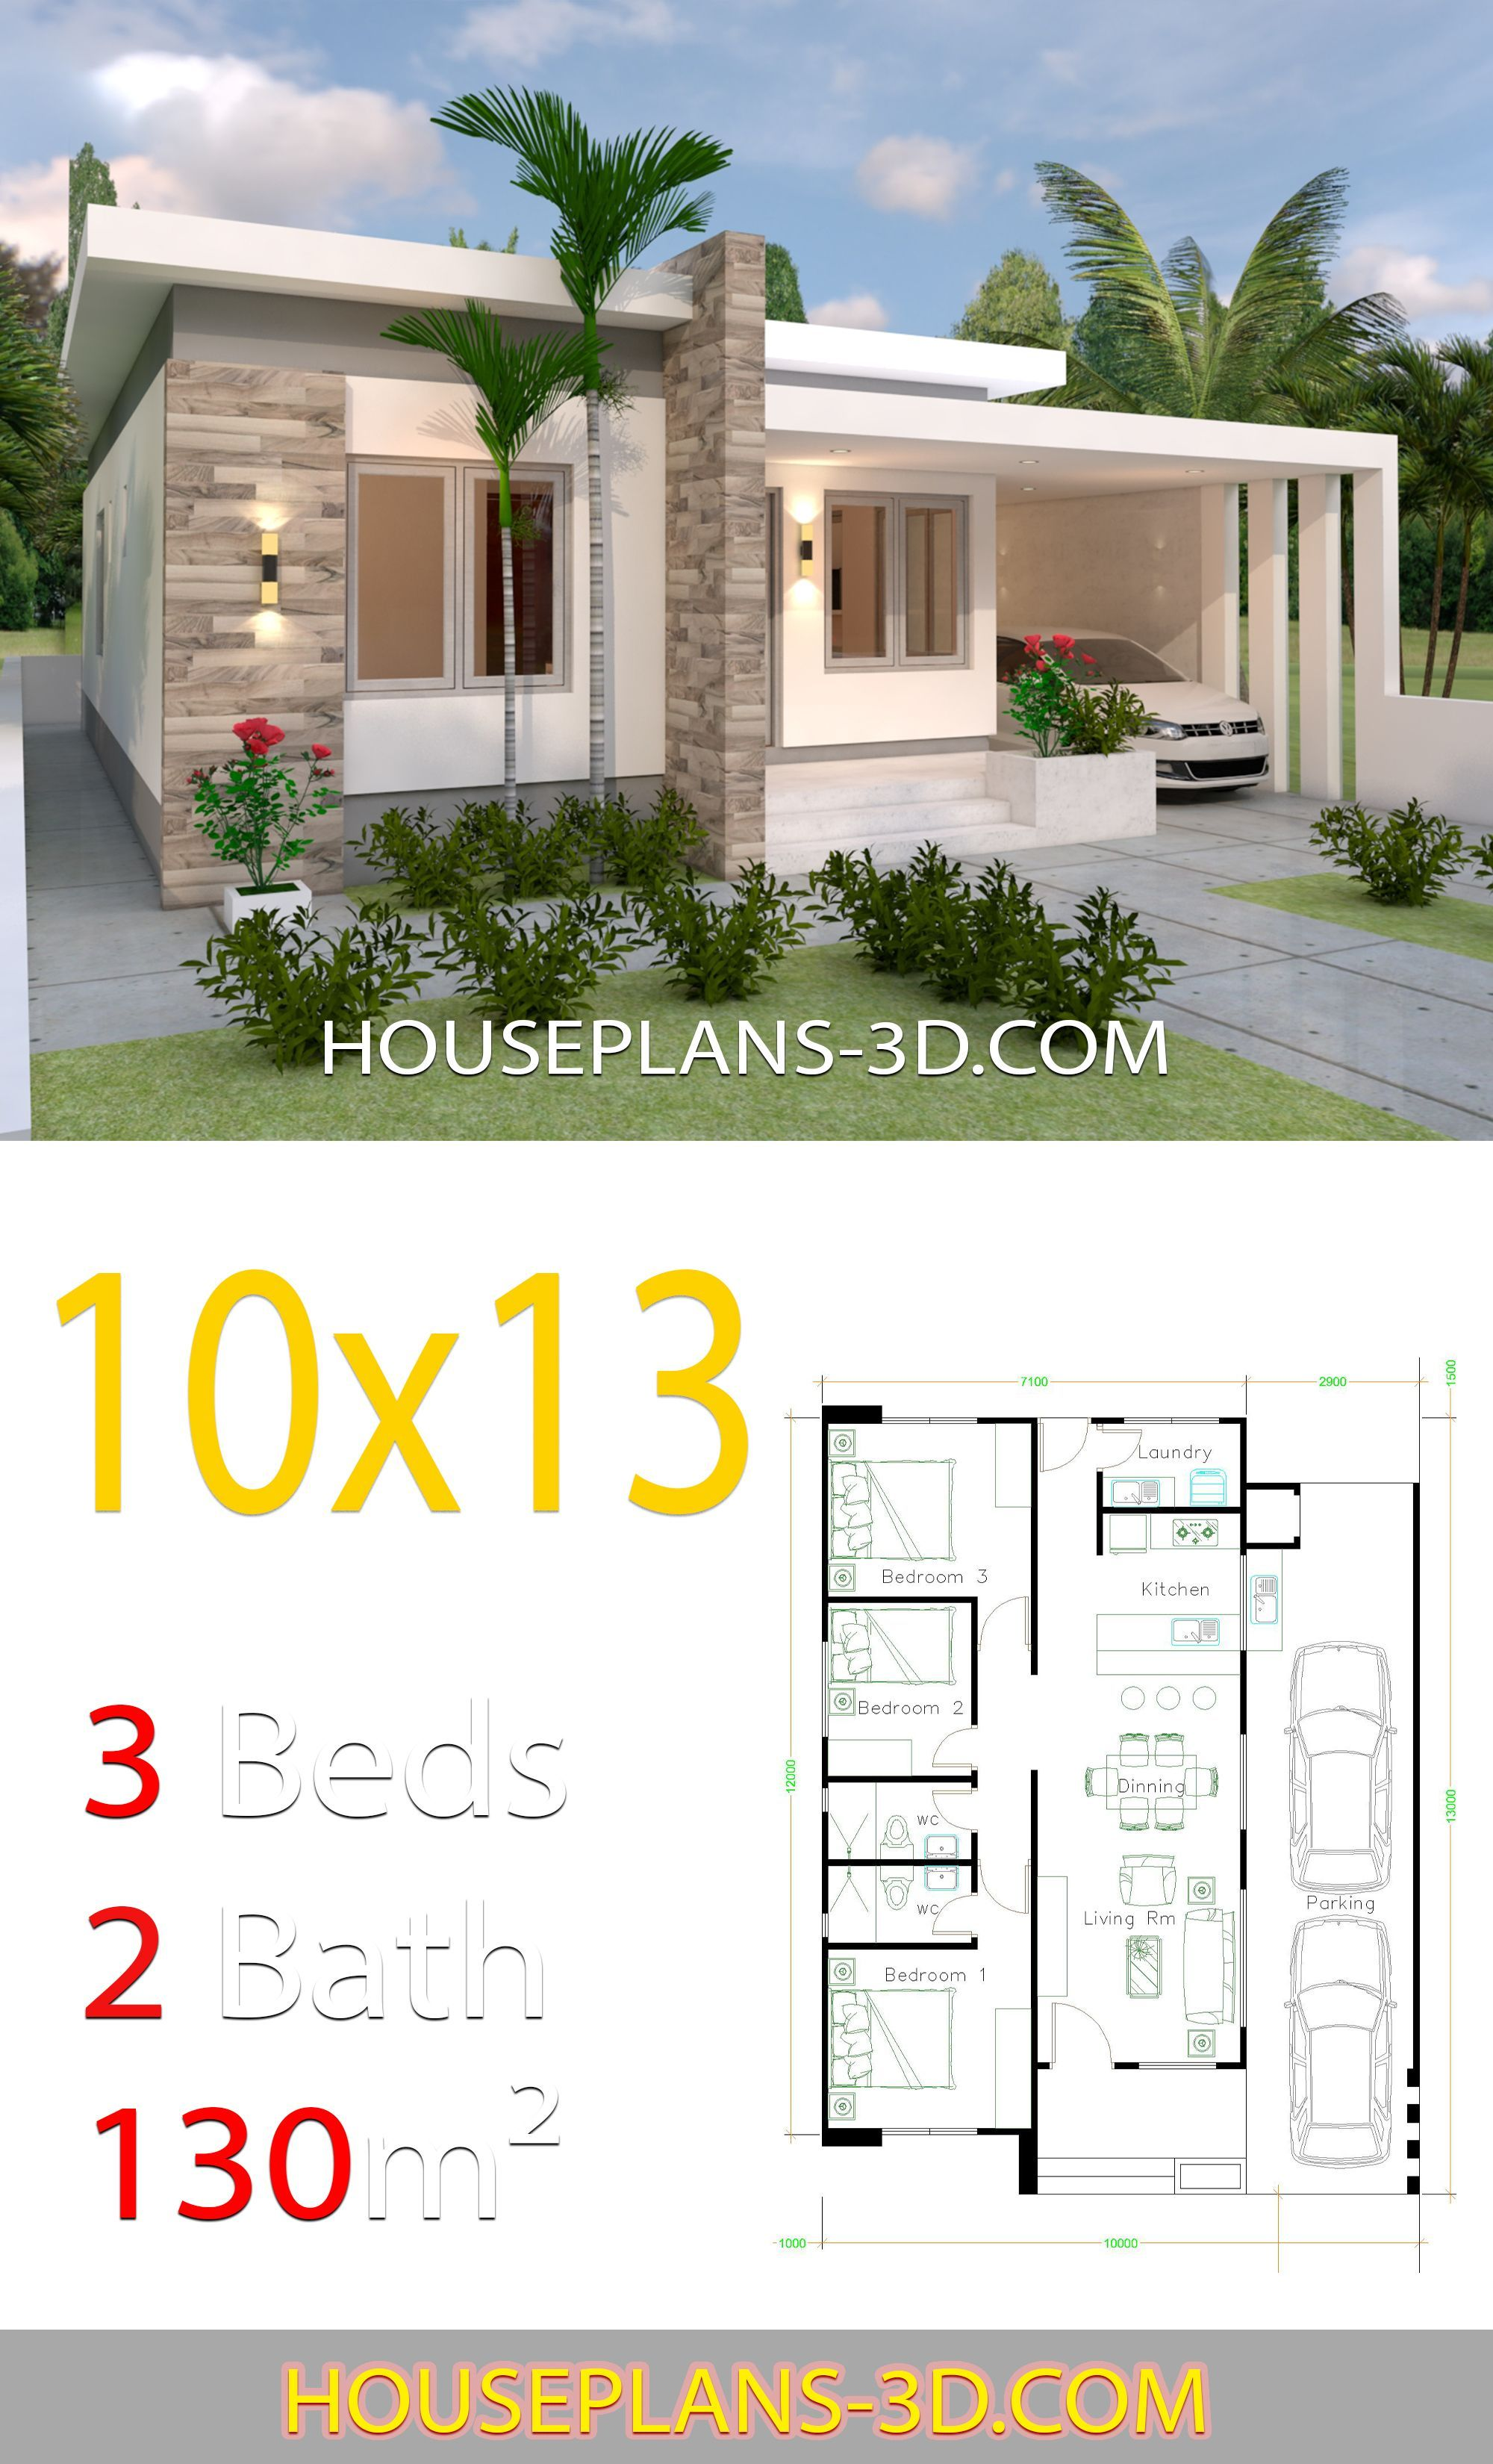 House Design 1013 With 3 Bedrooms Full Plans House Plans 3d In 2020 House Construction Plan Small House Design Plans Bungalow House Design